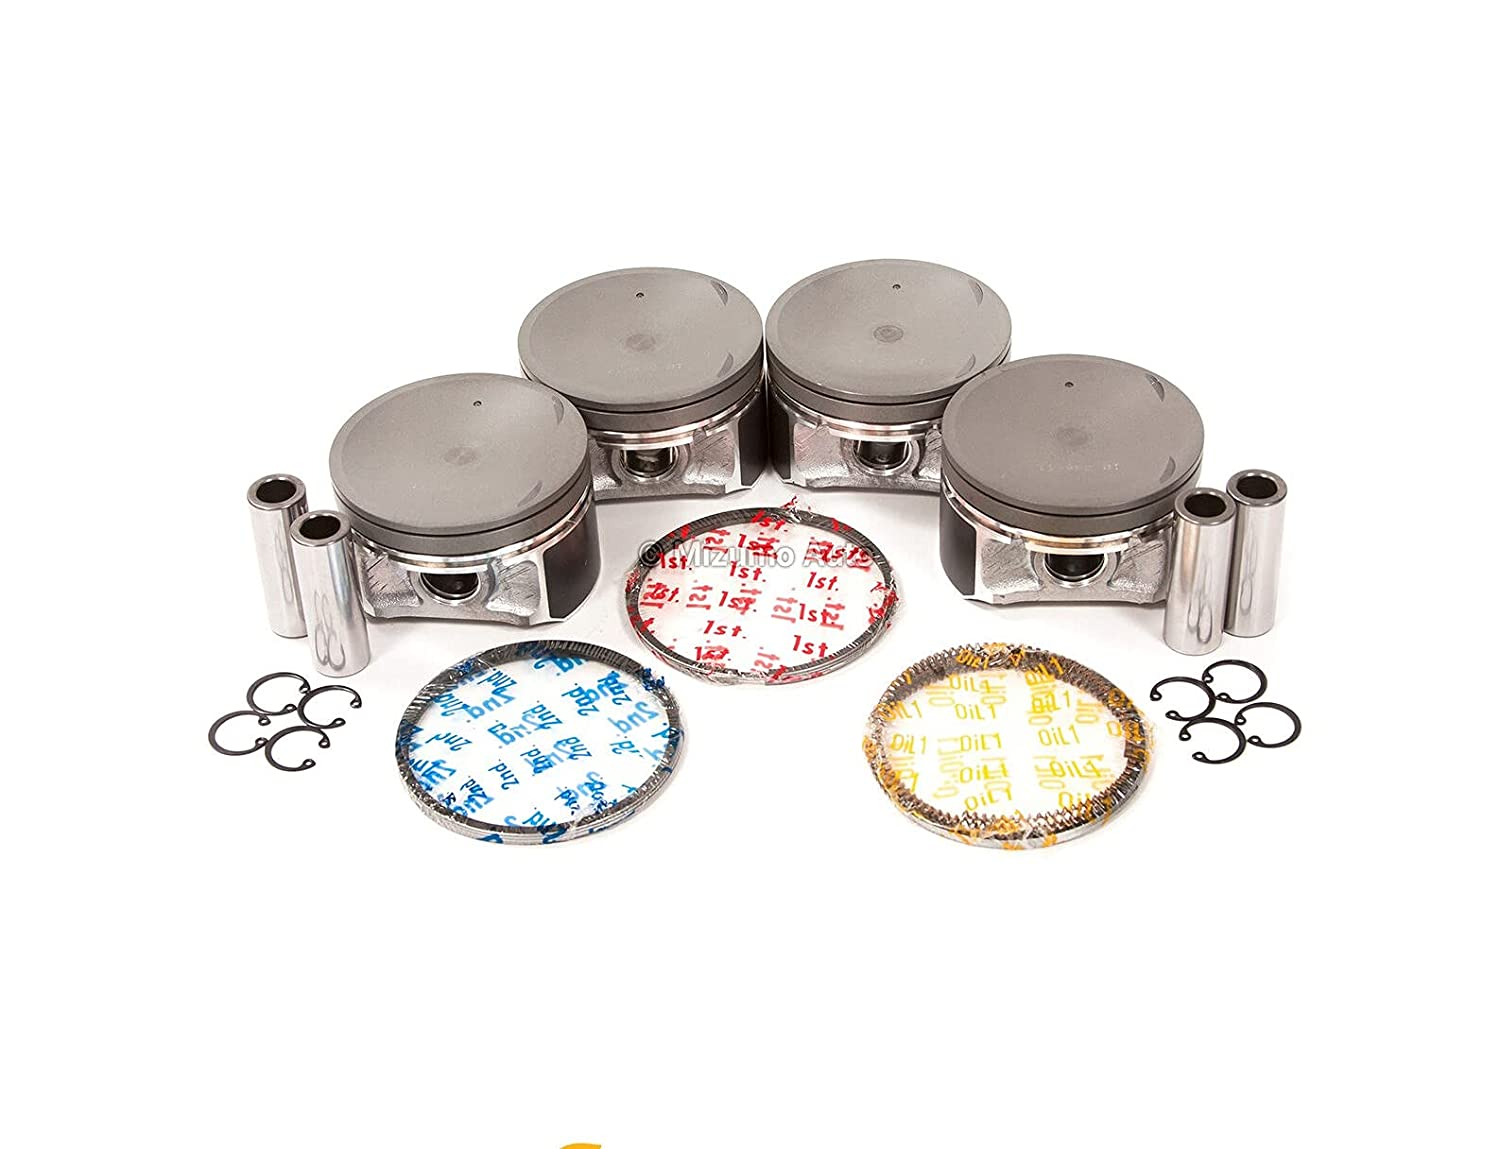 Time sale 1 Set of Pistons with Altima Rings Nissan Compatible lowest price 02-06